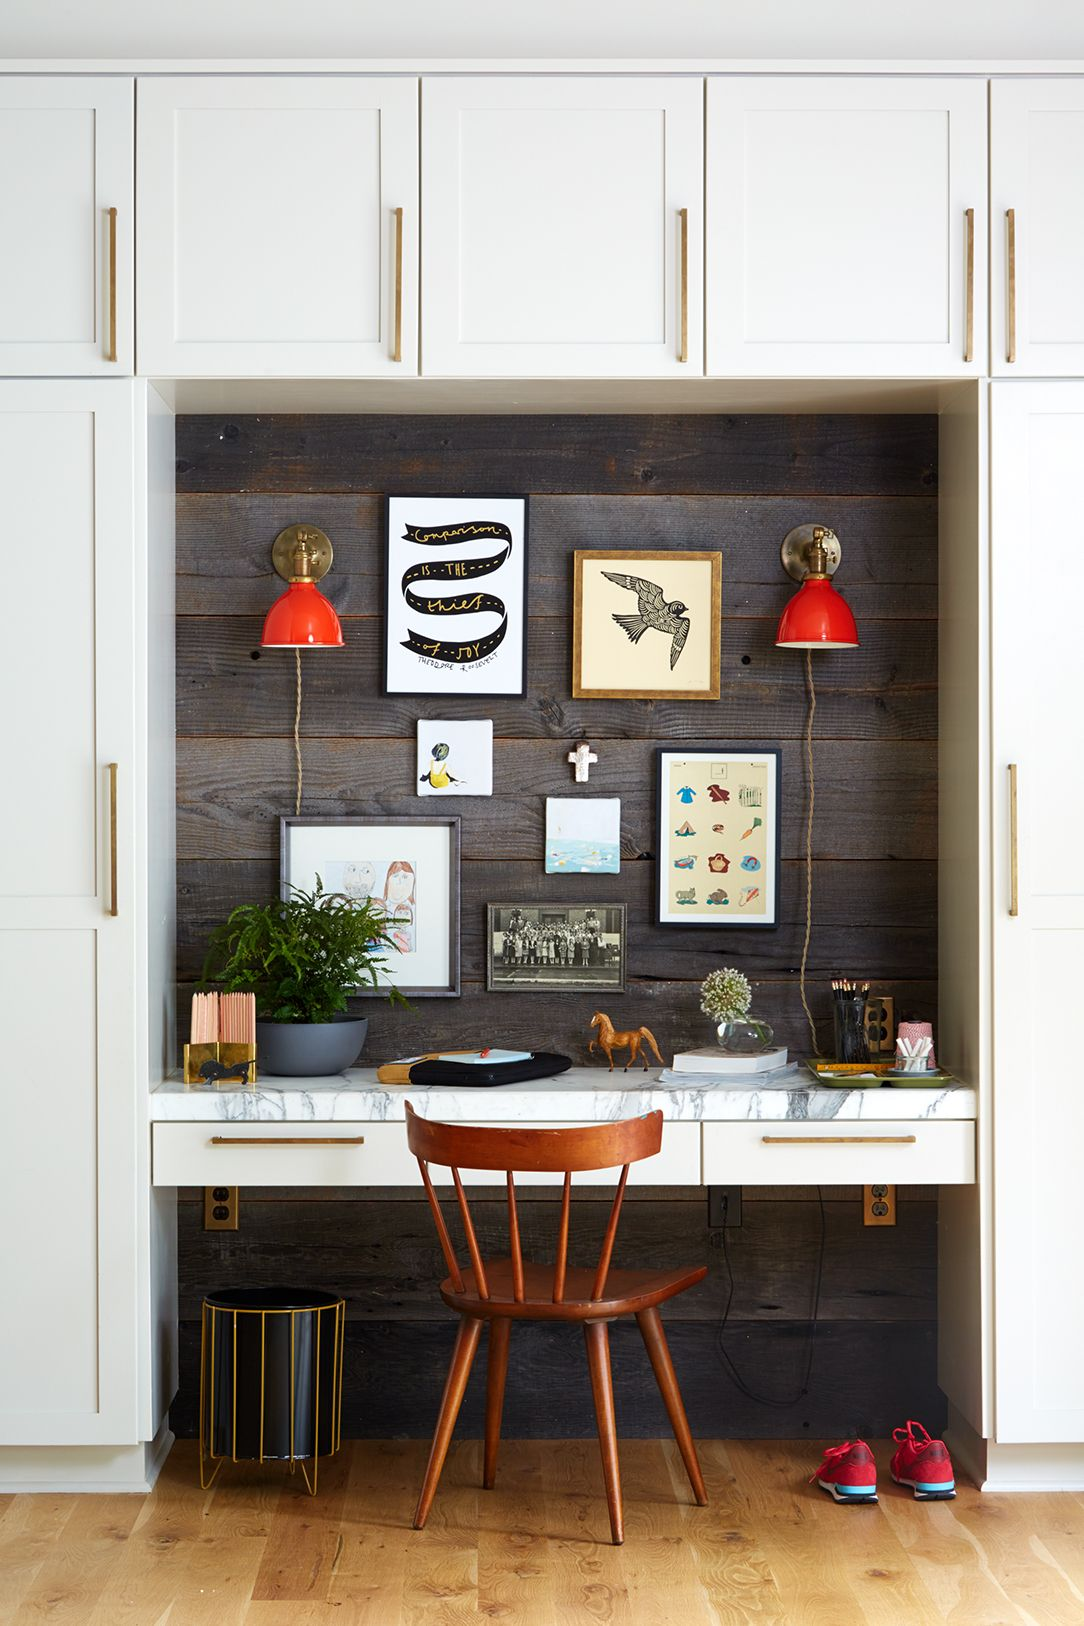 Dark wood home office with red wall sconces, small gallery wall, and white cabinetry